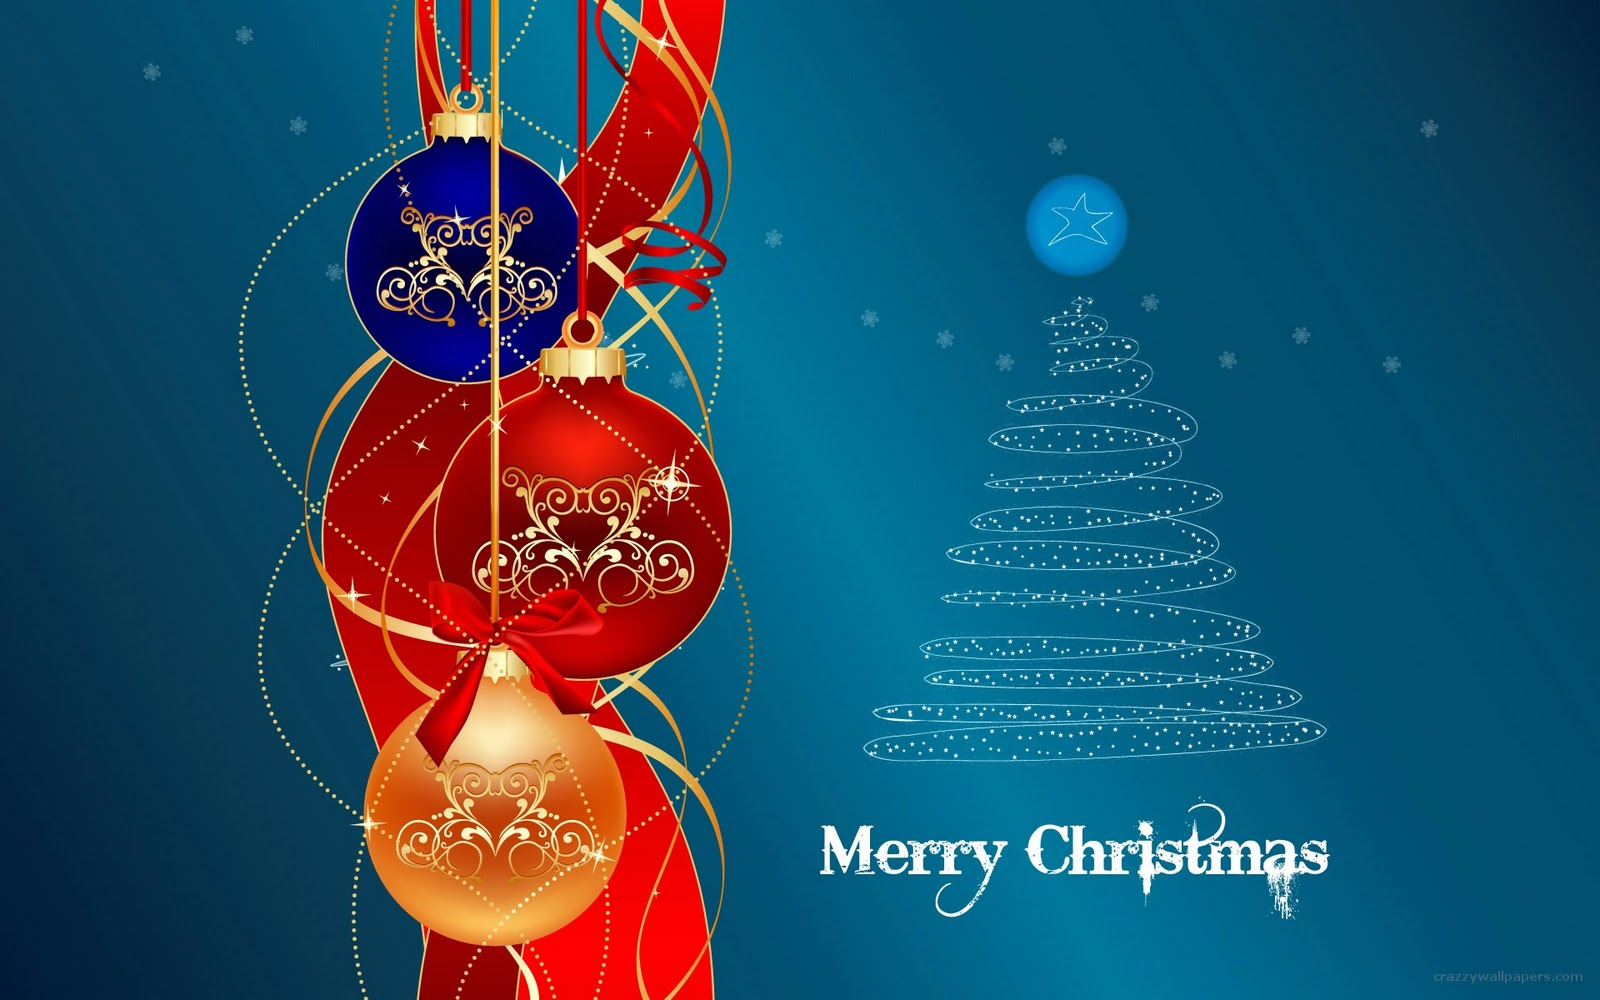 http://2.bp.blogspot.com/-4ozHEhPKp1I/Tqa0-5Jw75I/AAAAAAAACes/6GacFlpxXyQ/s1600/Christmas-decor-wallpaper+2012.jpg